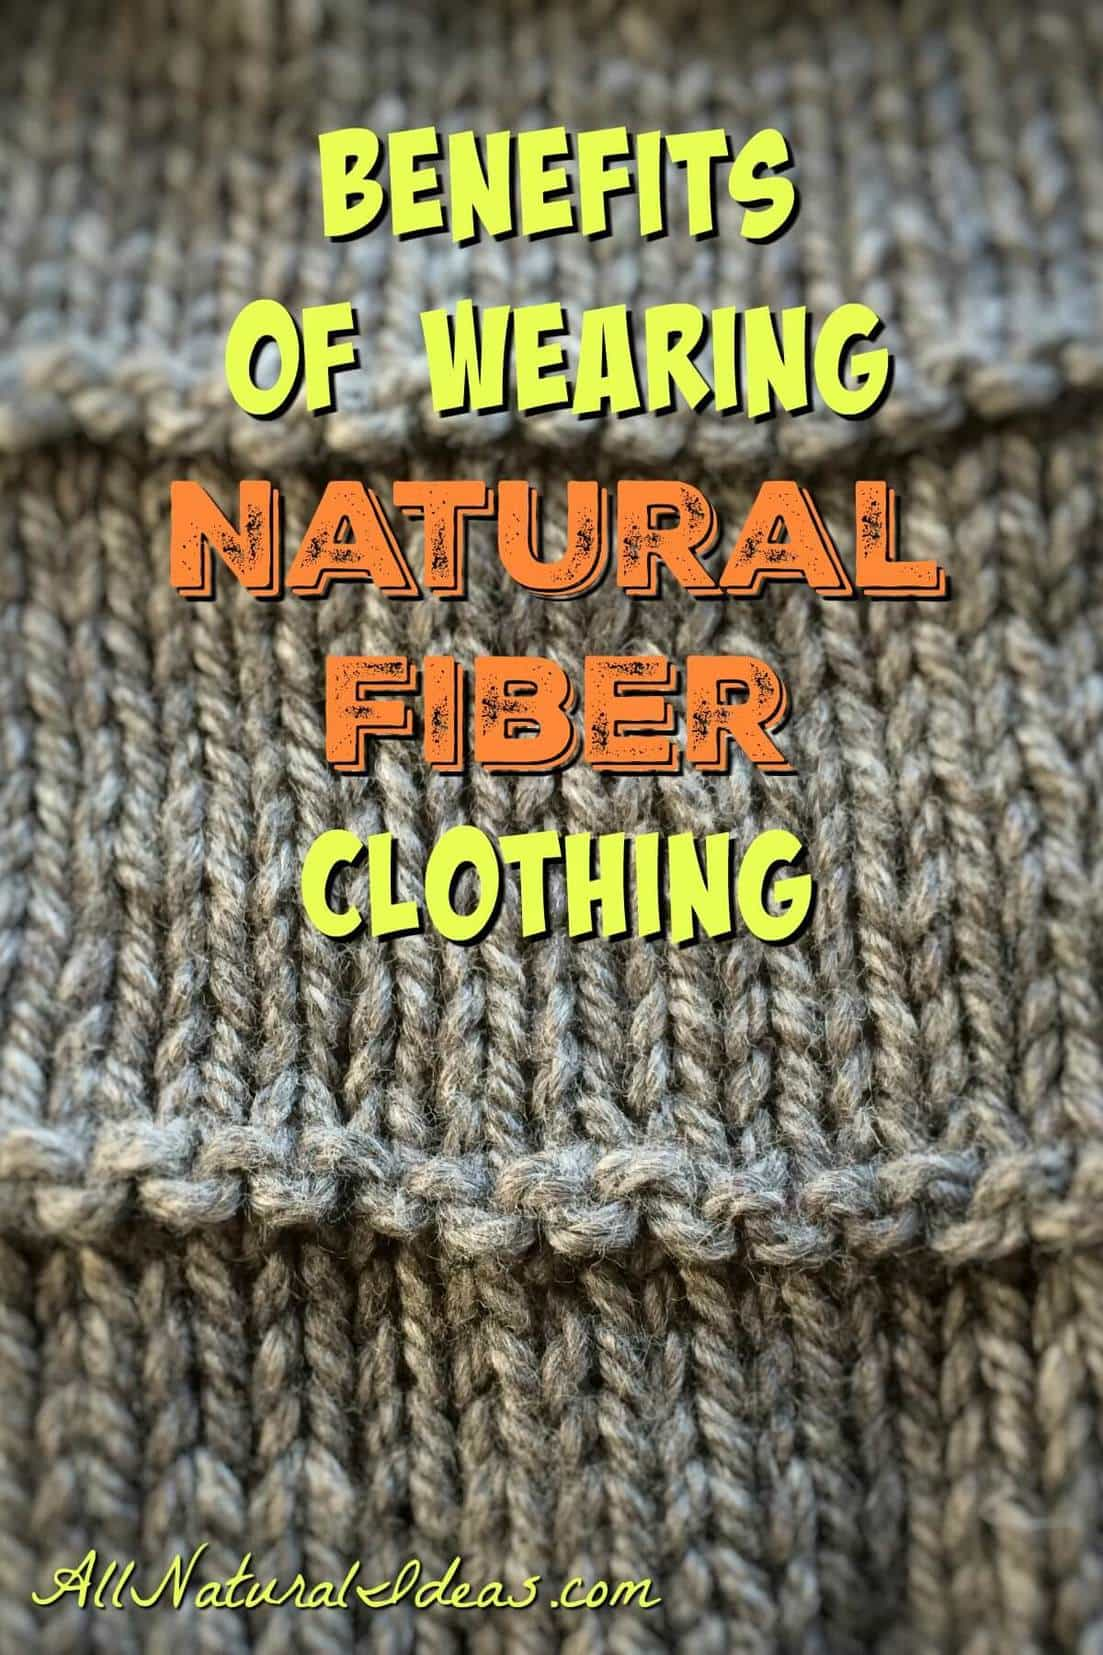 Wearing natural fiber clothing benefits